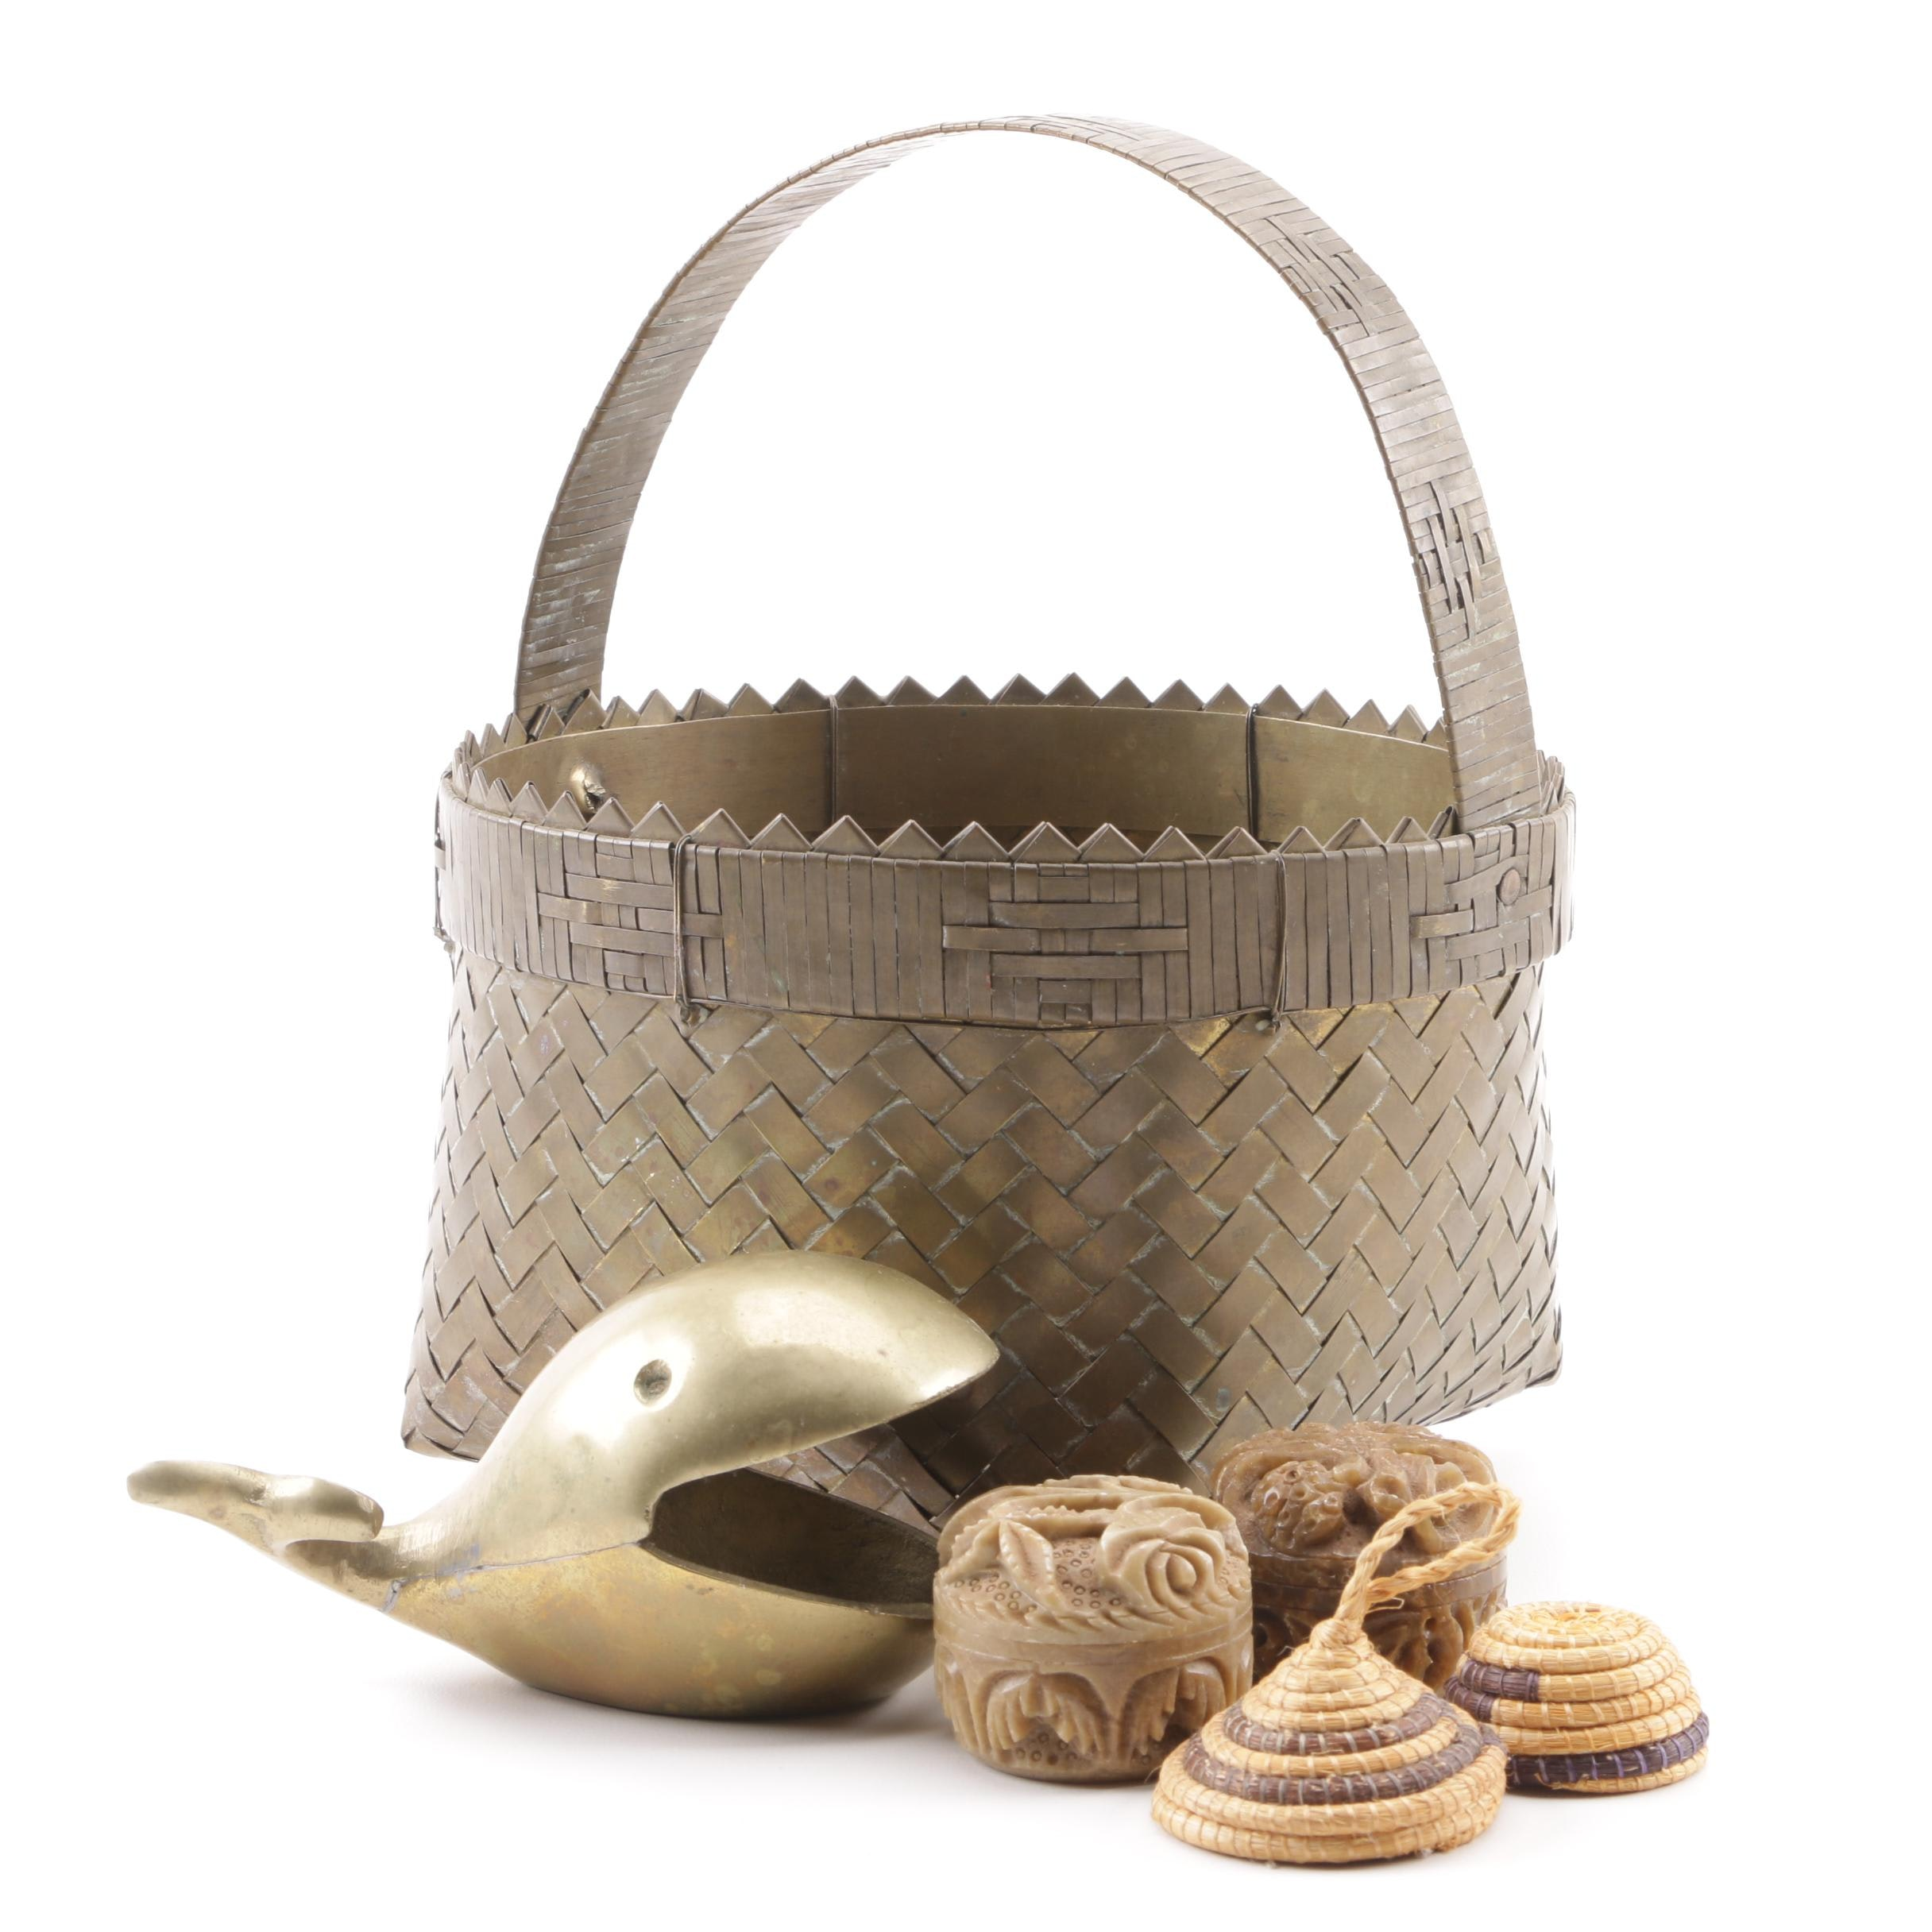 Brass Basket, R. Expo Soapstone Solid Perfumes, Decorative Whale and Mini Basket